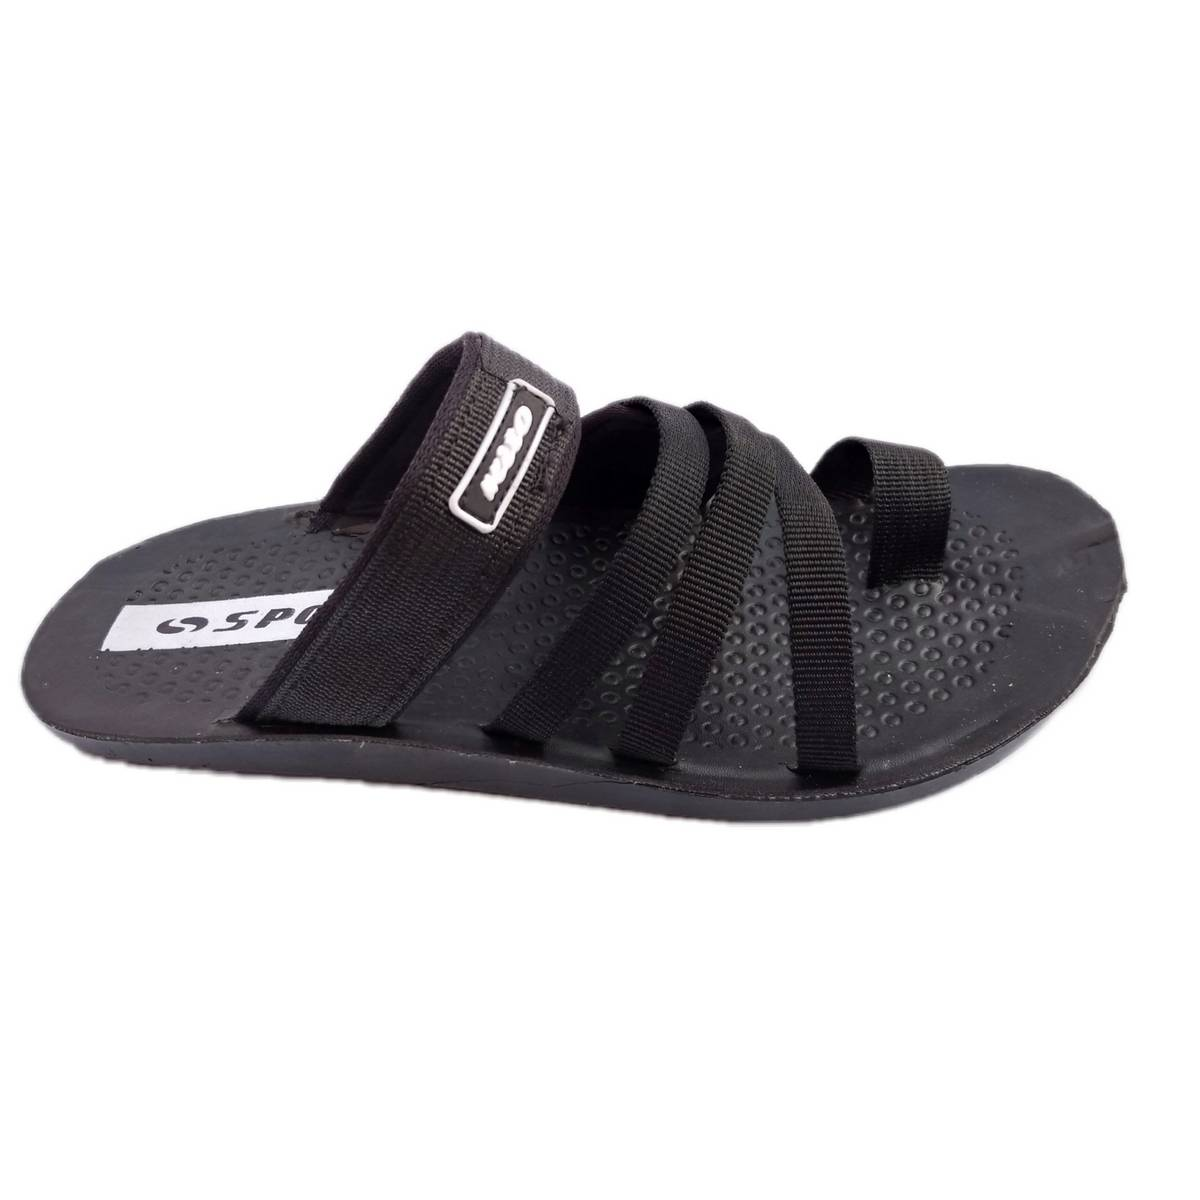 Slippers / Shoes / Sandals for Men -Chappal - Spot slipper -Black-Quality and comfortable